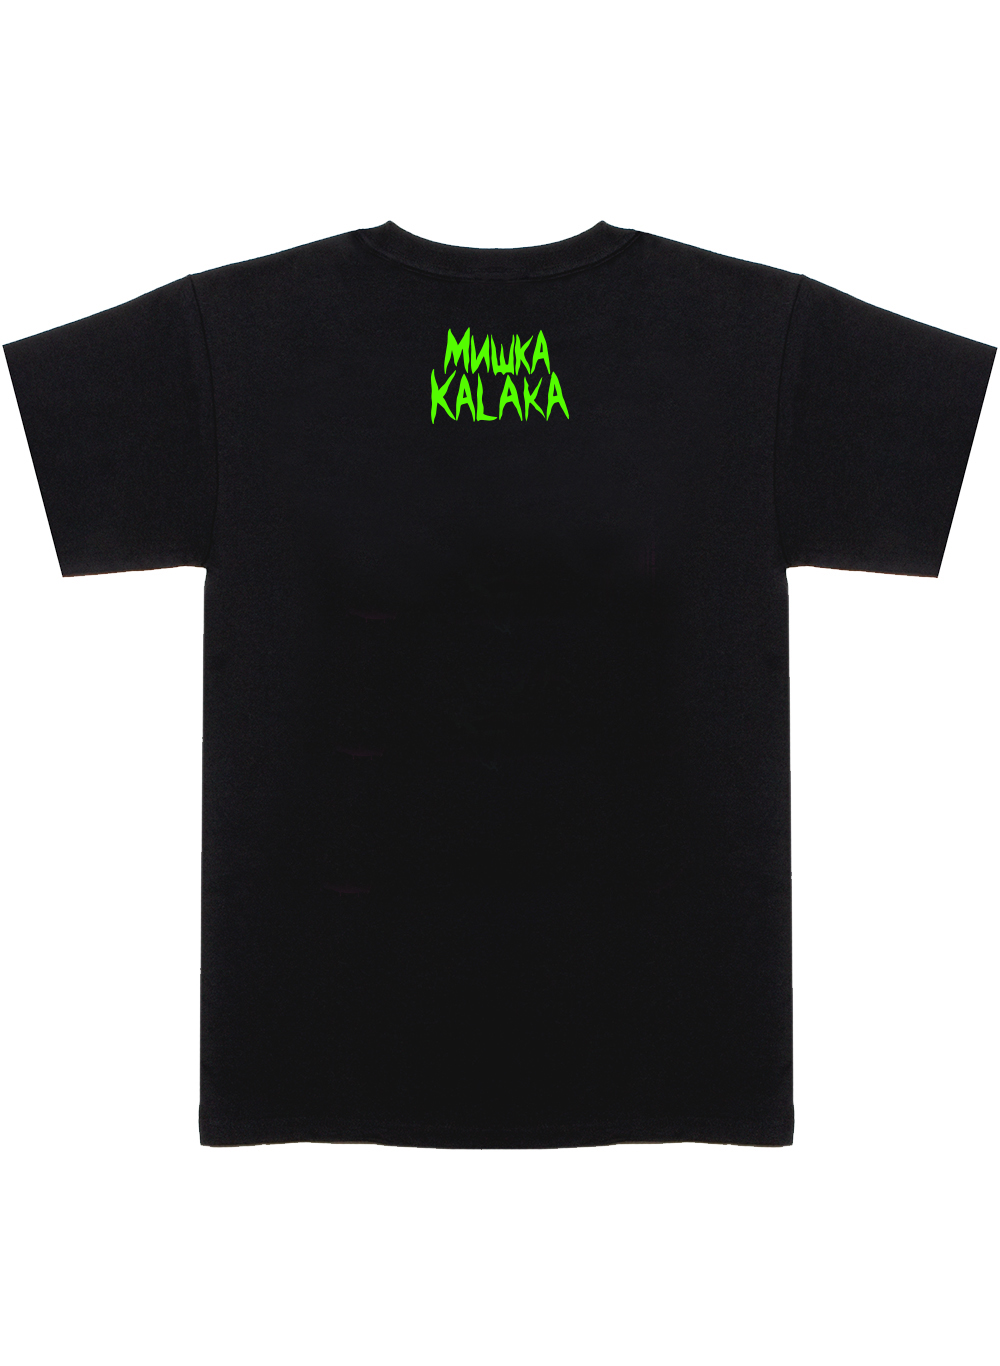 Kalaka Split Faced T-shirt